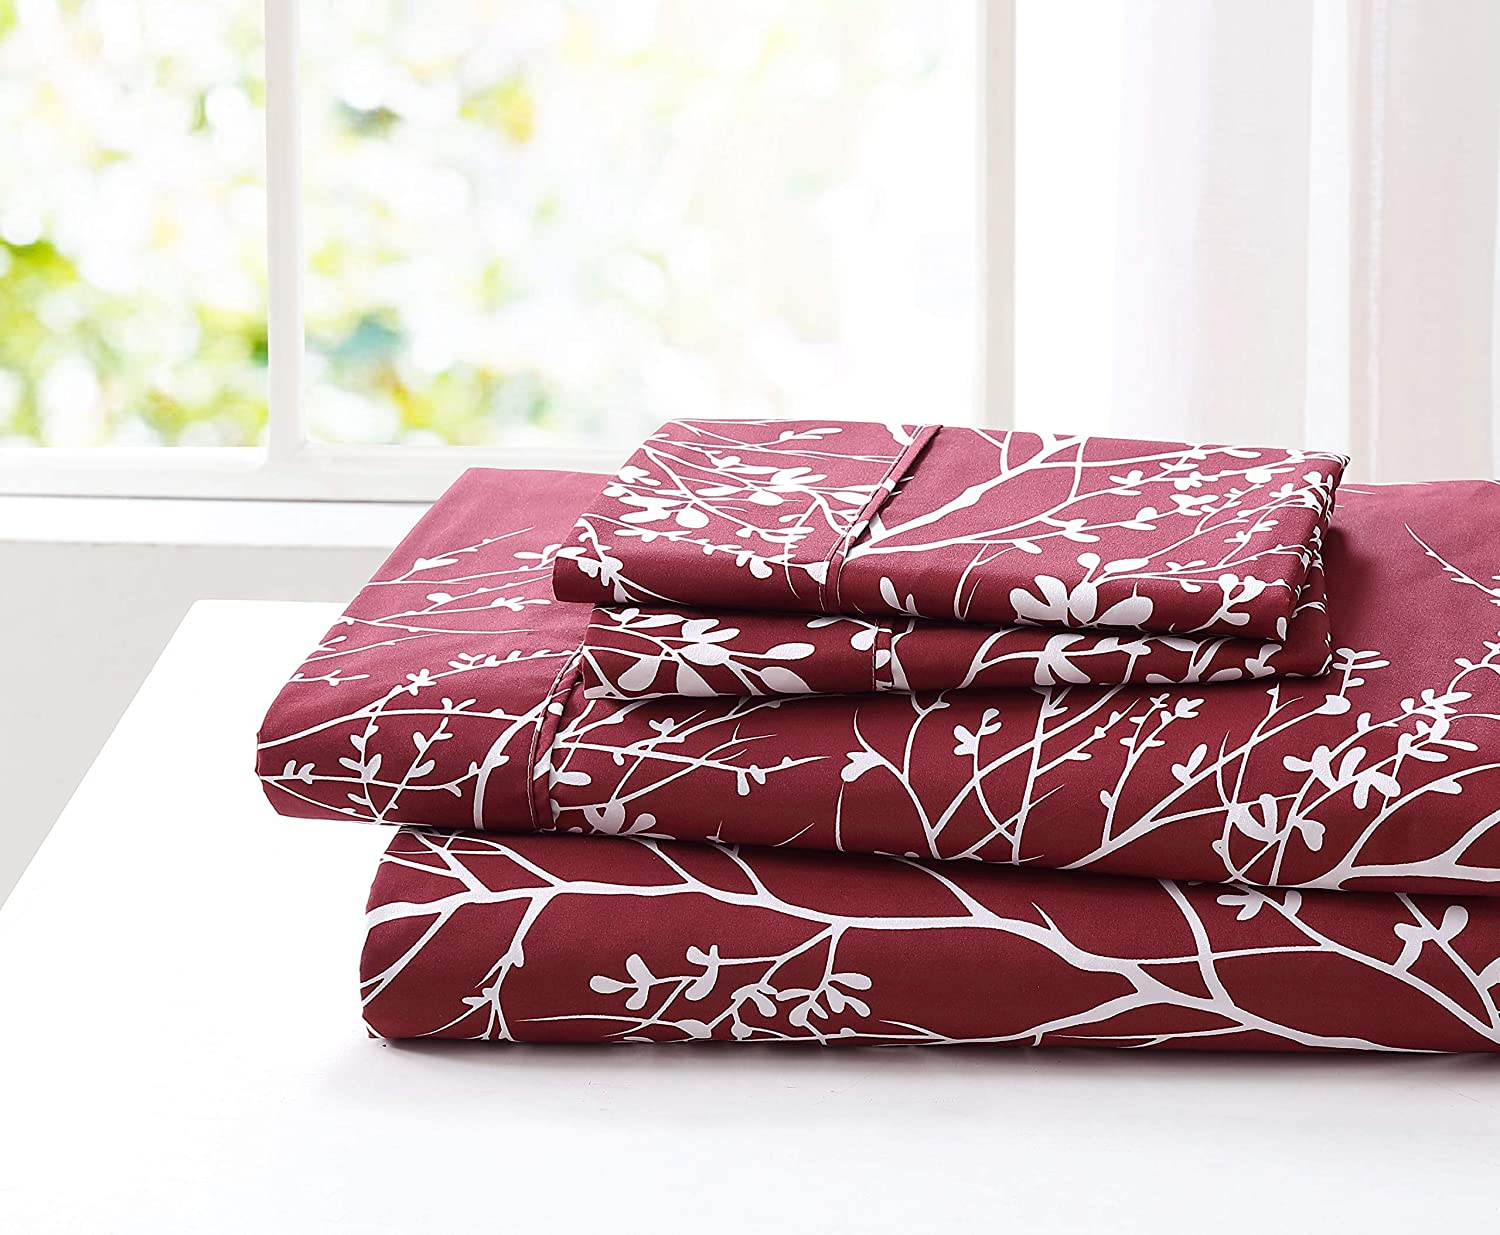 Spirit Linen Home 3pc Bed Sheets Set Printed Beautiful Foliage Design 1800 Bedding Soft Microfiber Sheet with Fitted Sheet and Pillowcases (Twin, Burgundy White)